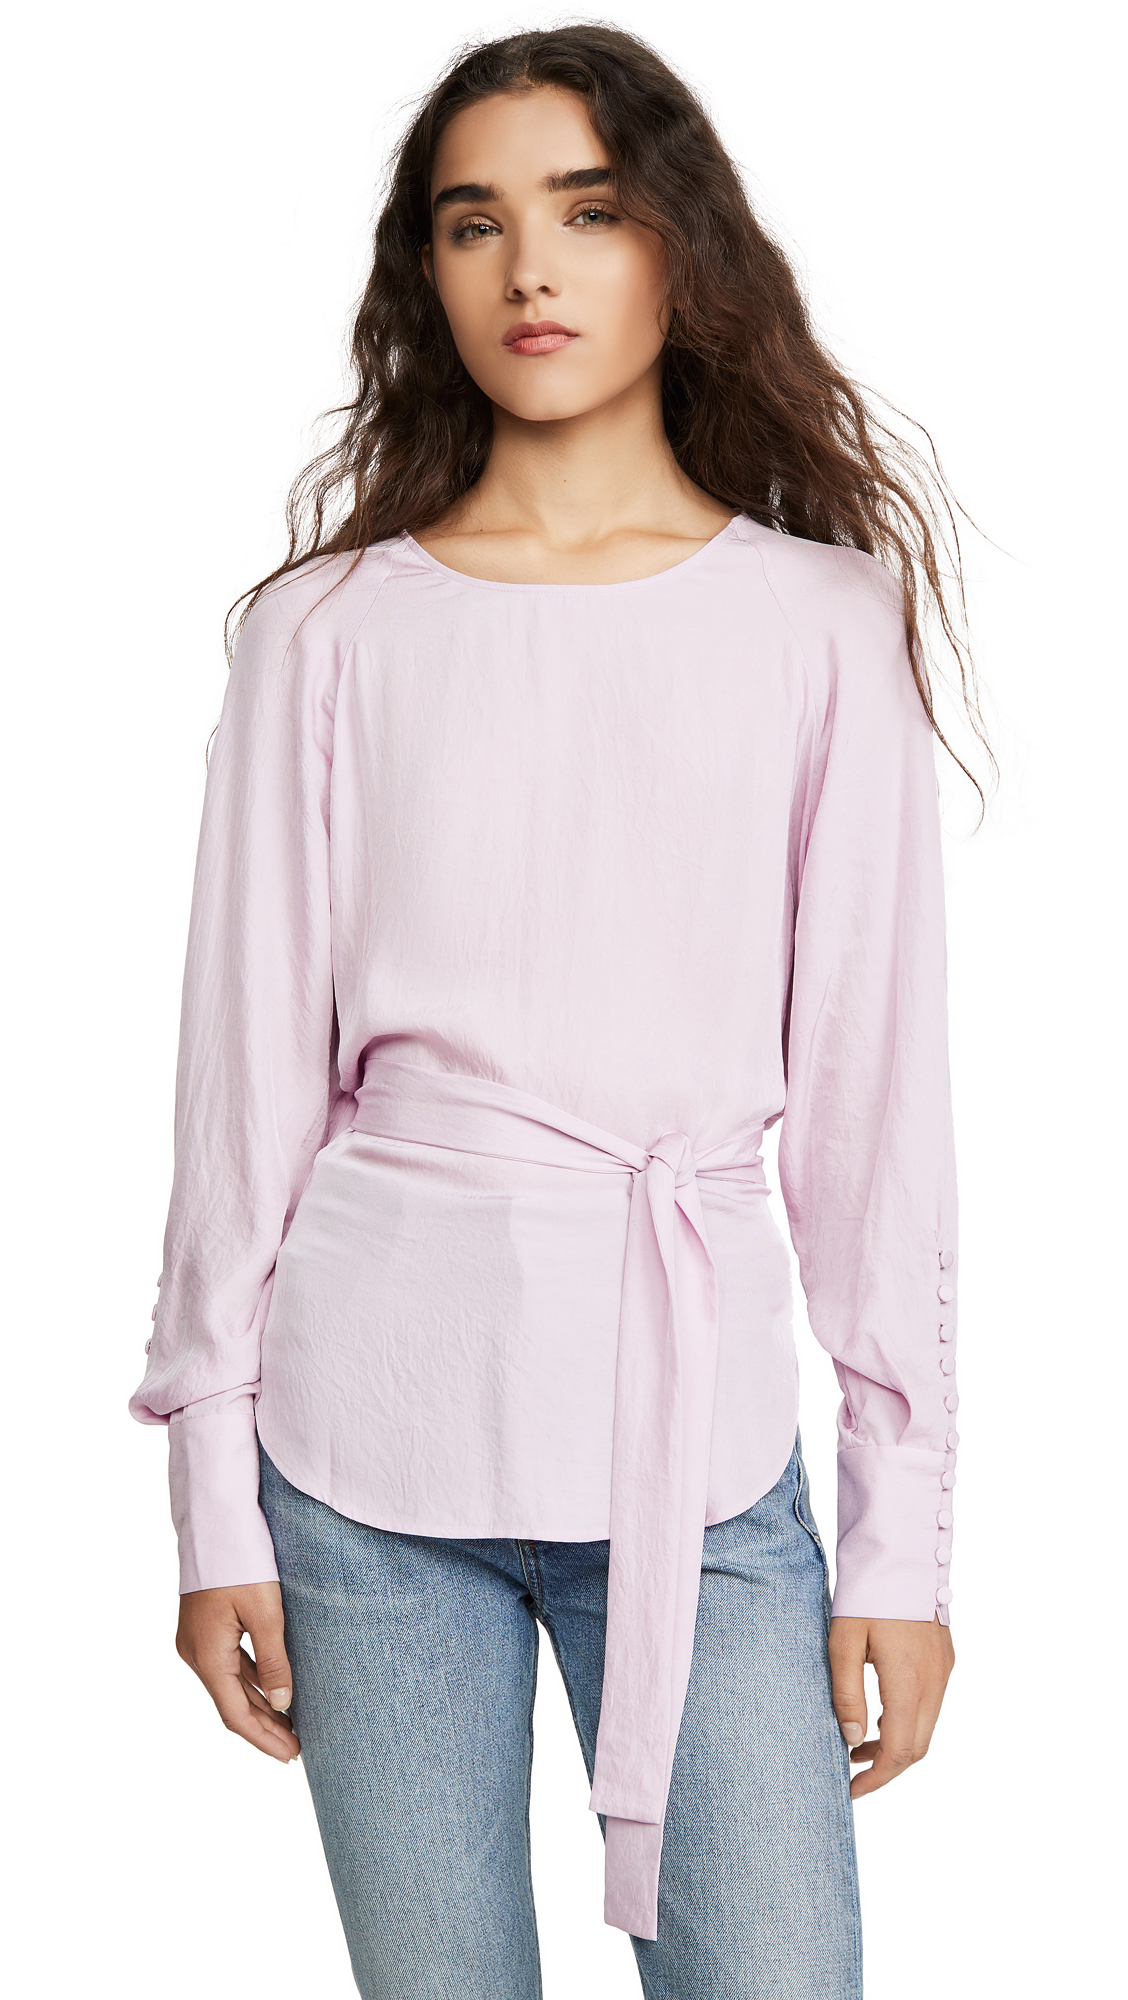 Jason Wu Wrap Blouse - 30% Off Sale